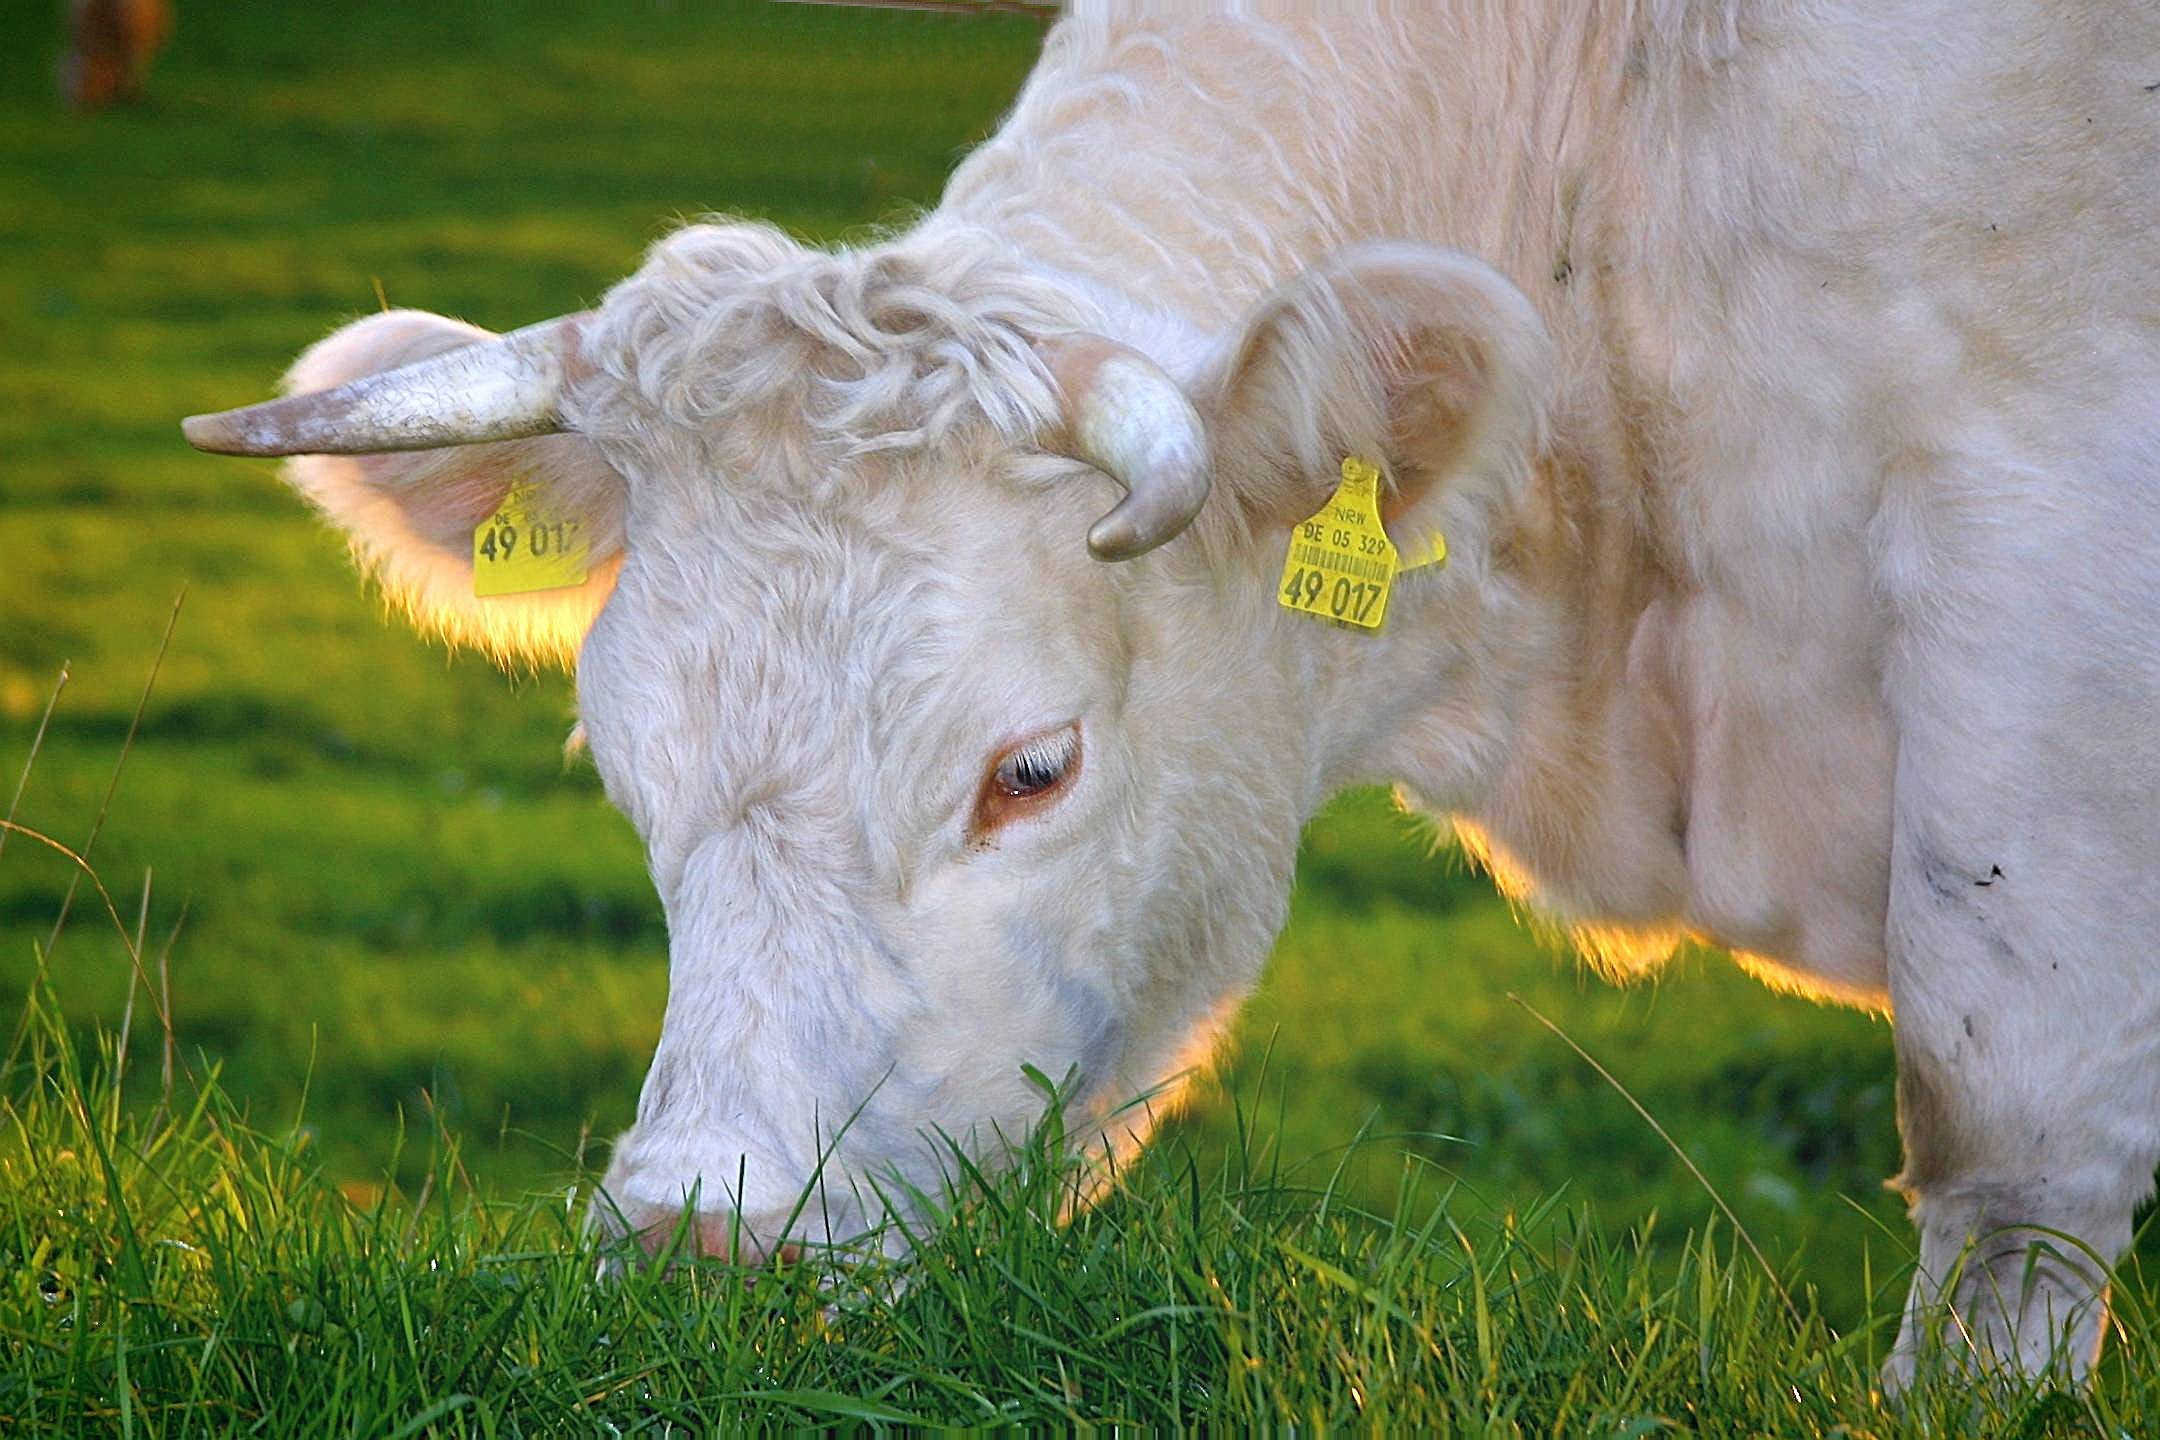 White Cow Eating Green Grass